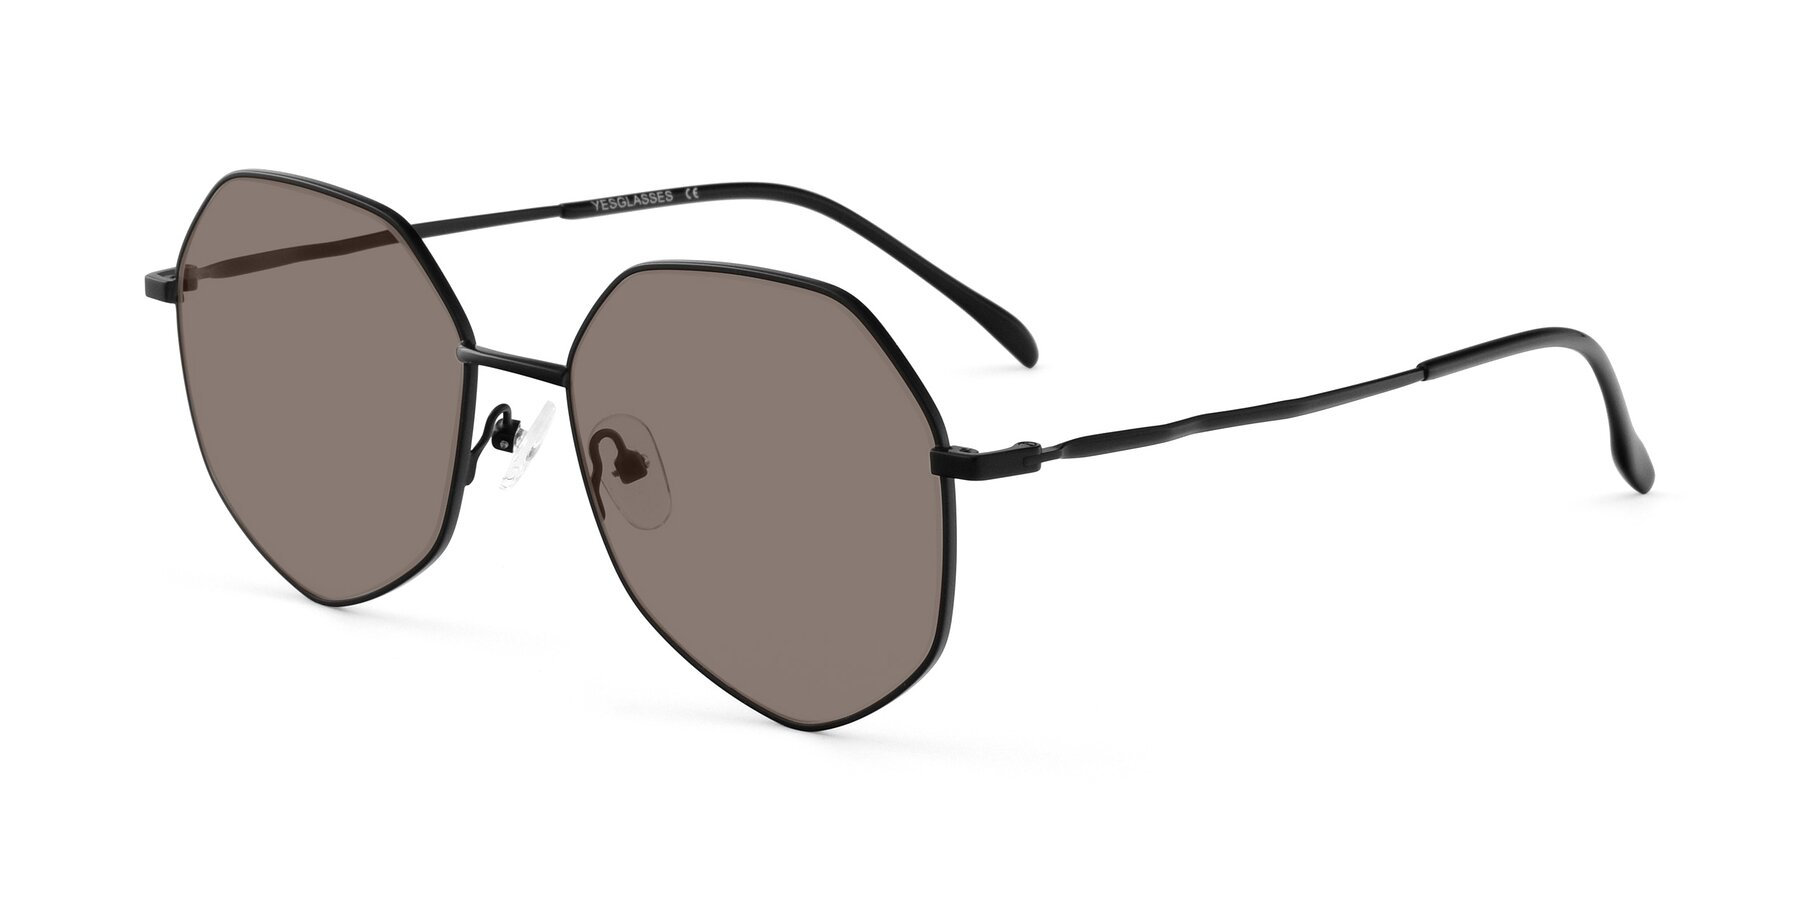 Angle of Sunshine in Black with Medium Brown Tinted Lenses